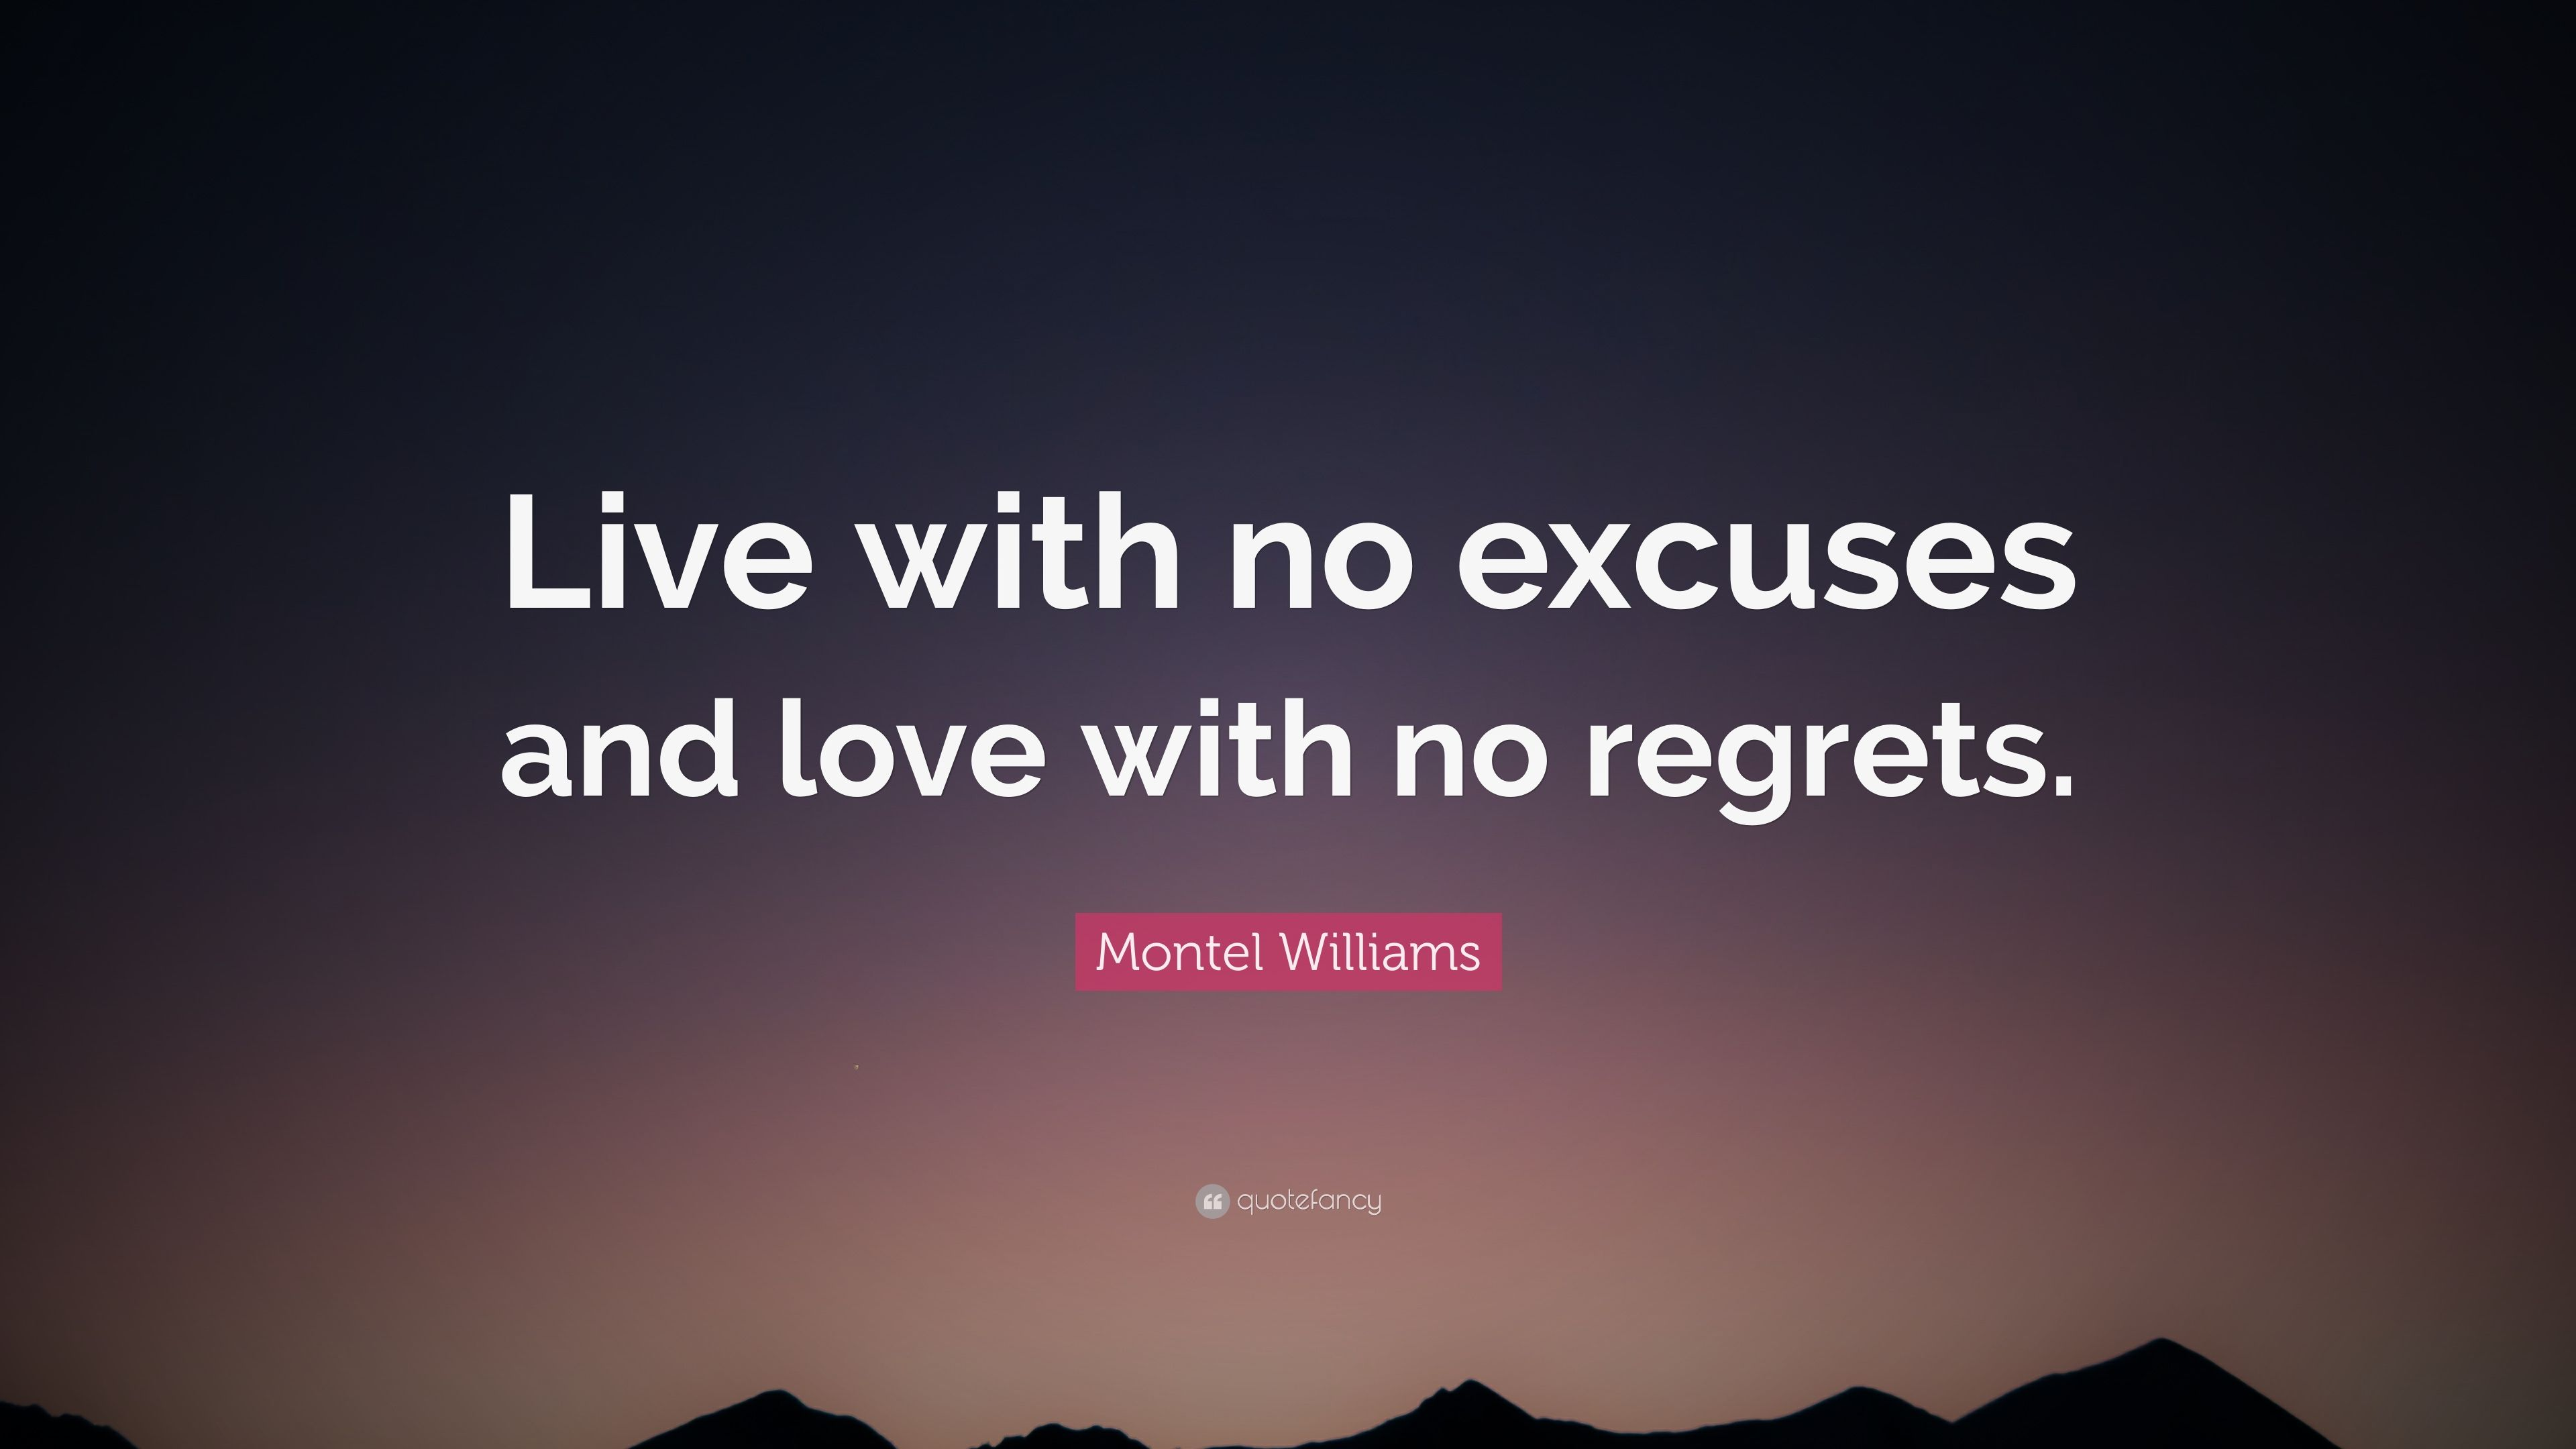 To Live Life with No Regret